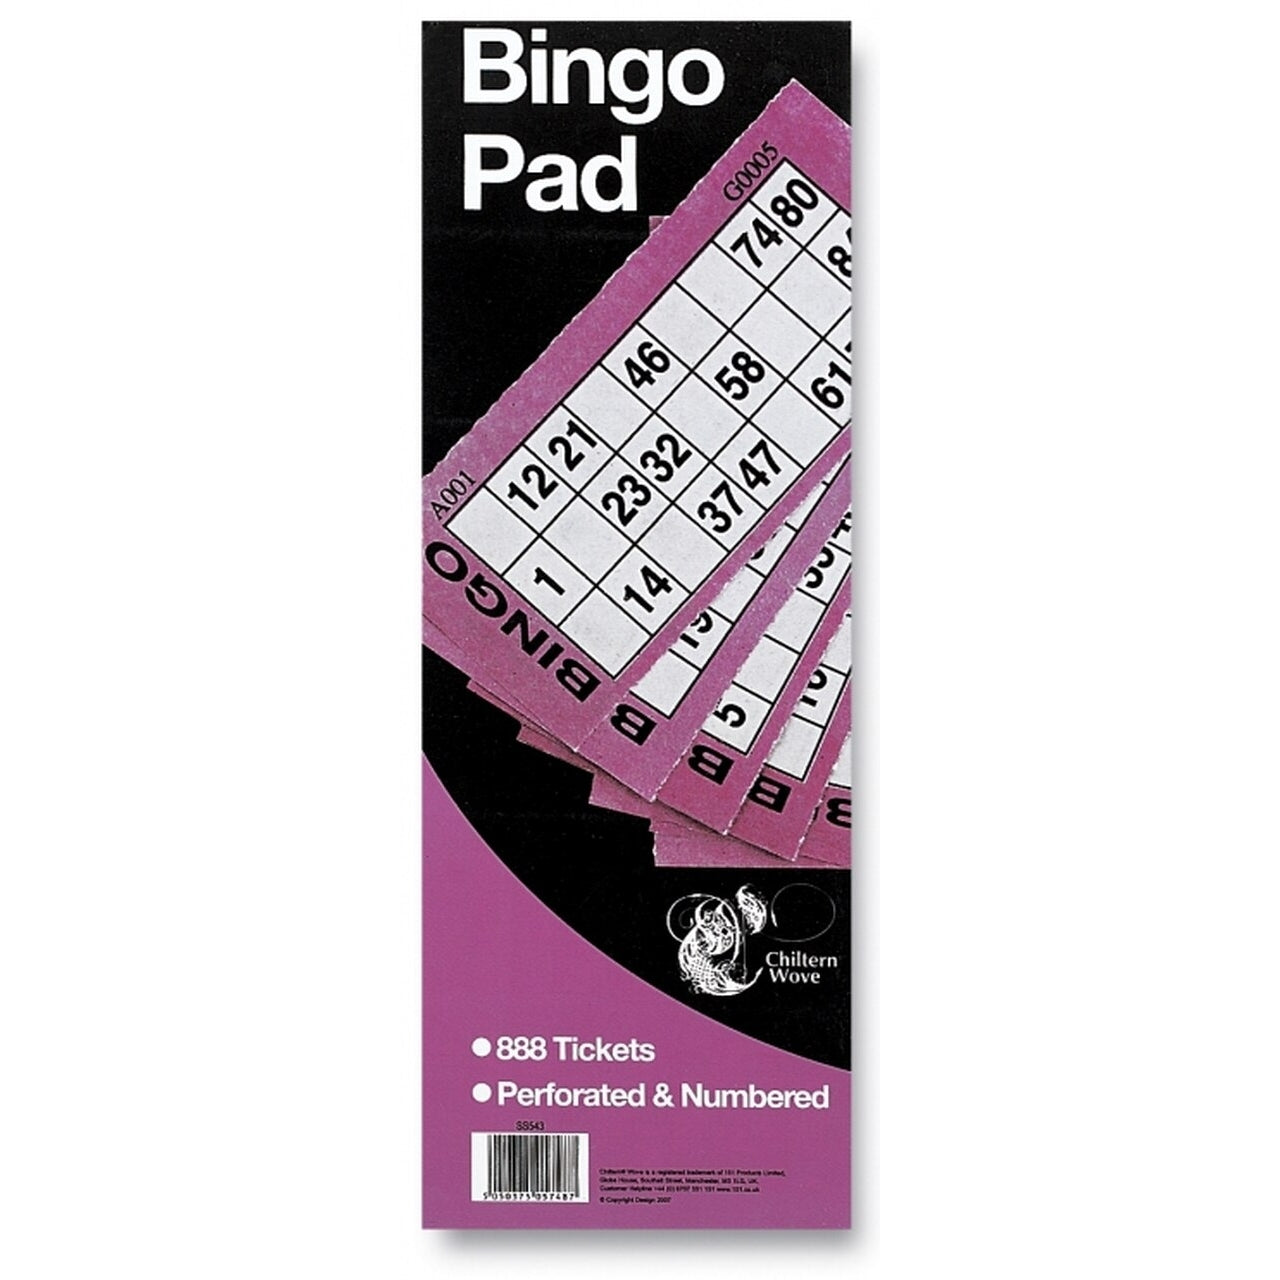 Bingo Ticket Pad (888 Tickets)